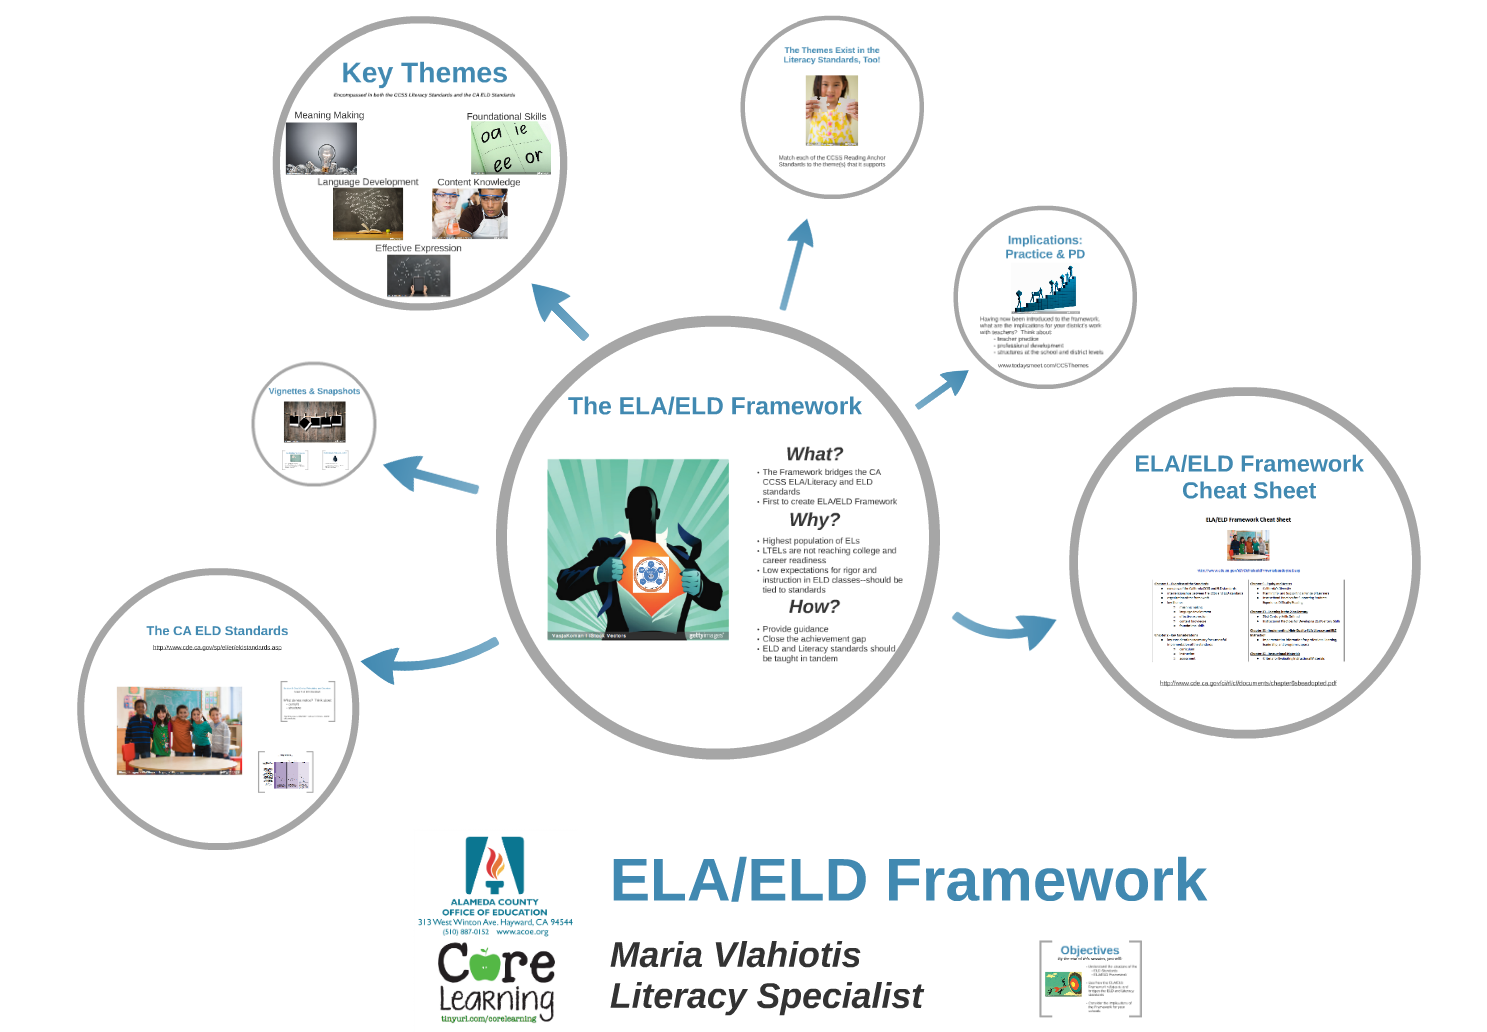 ACOE's Core Learning Blog: The ELA/ELD Framework